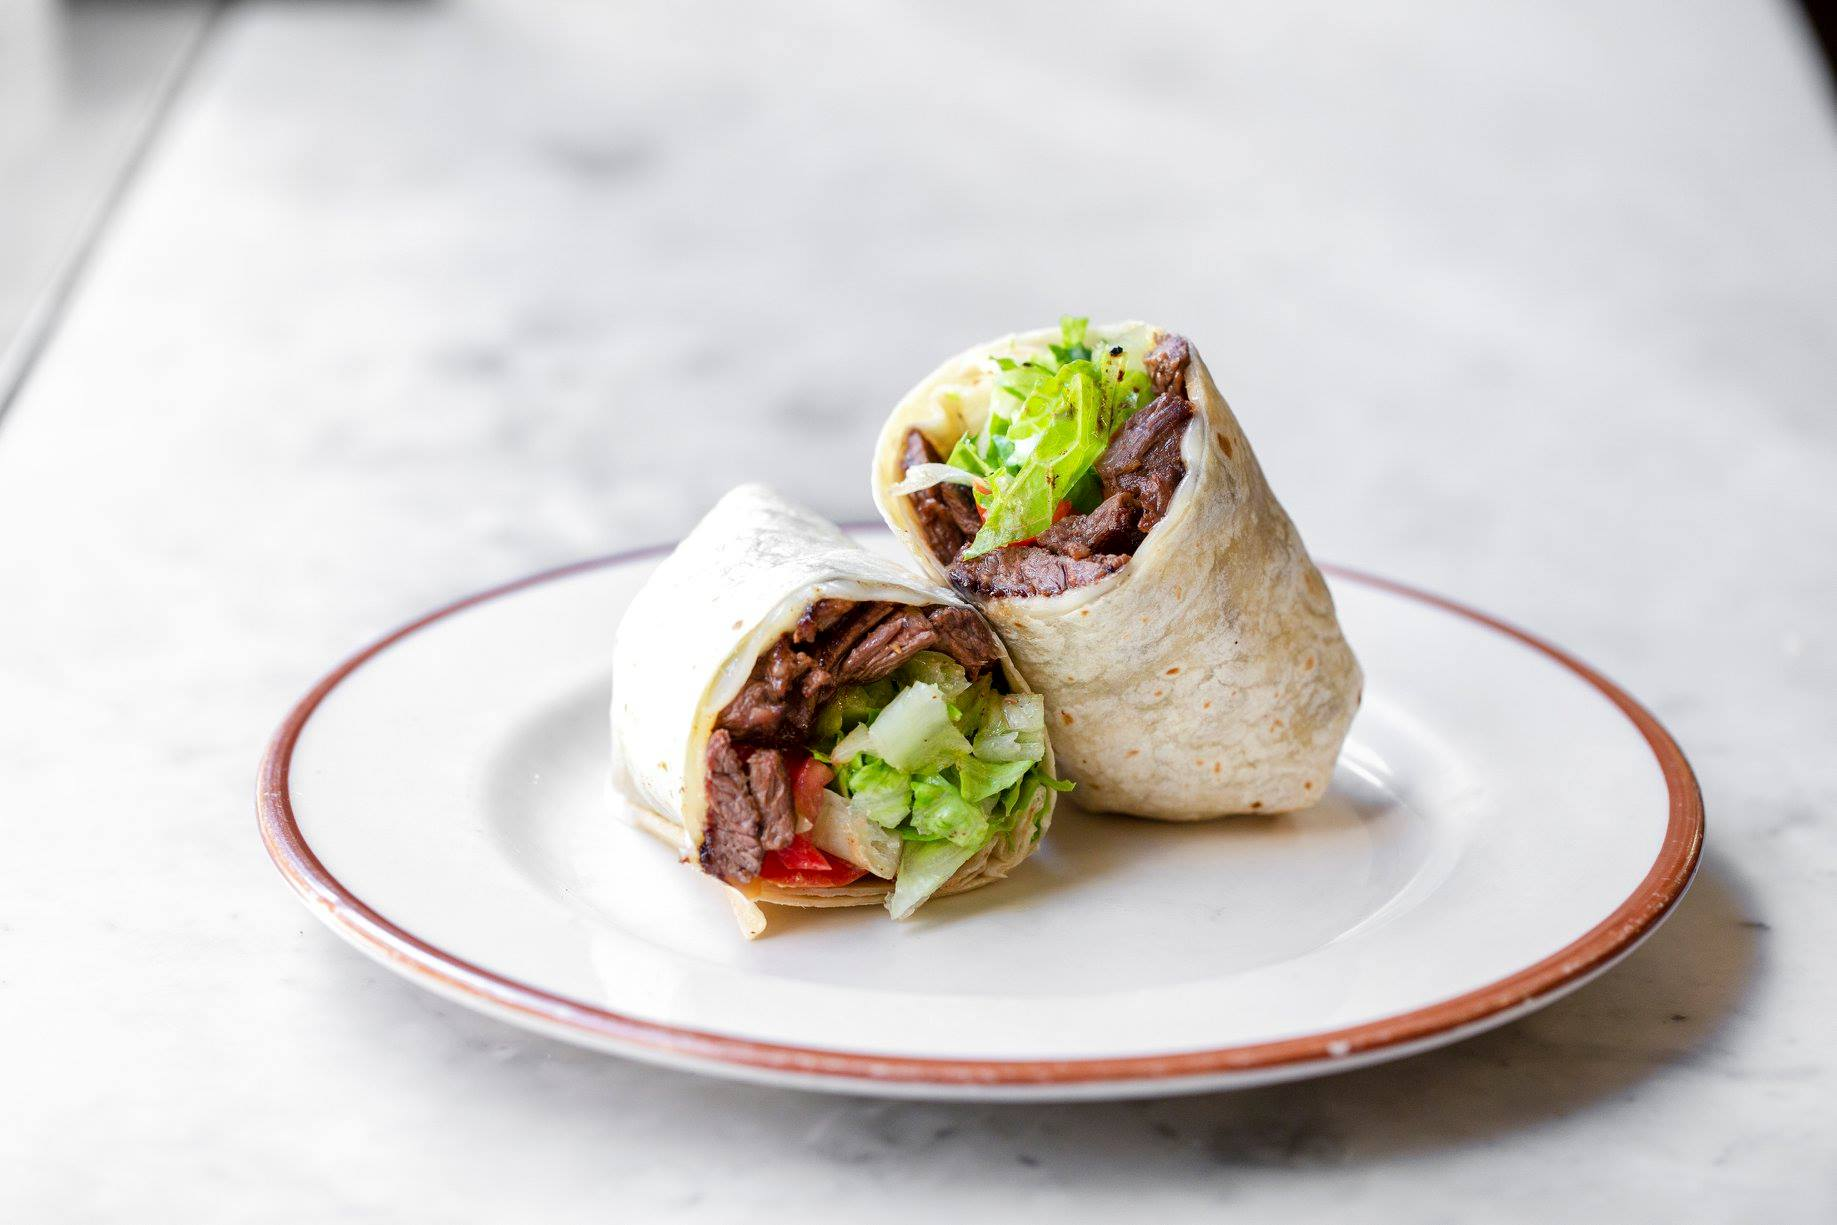 Steak wrap with lettuce on plate